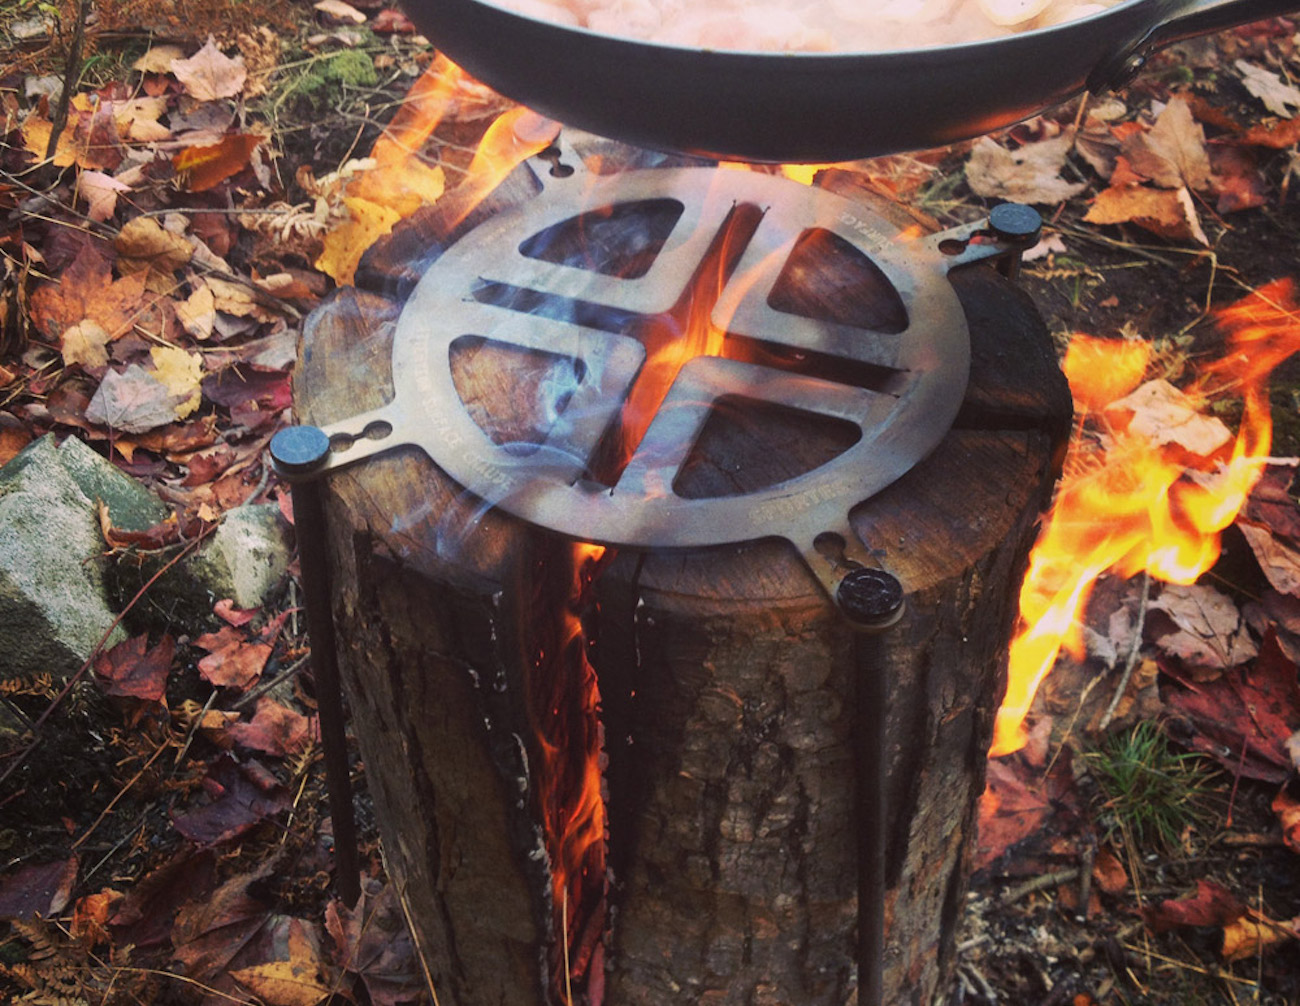 Sportes Swedish Fire Log Grill